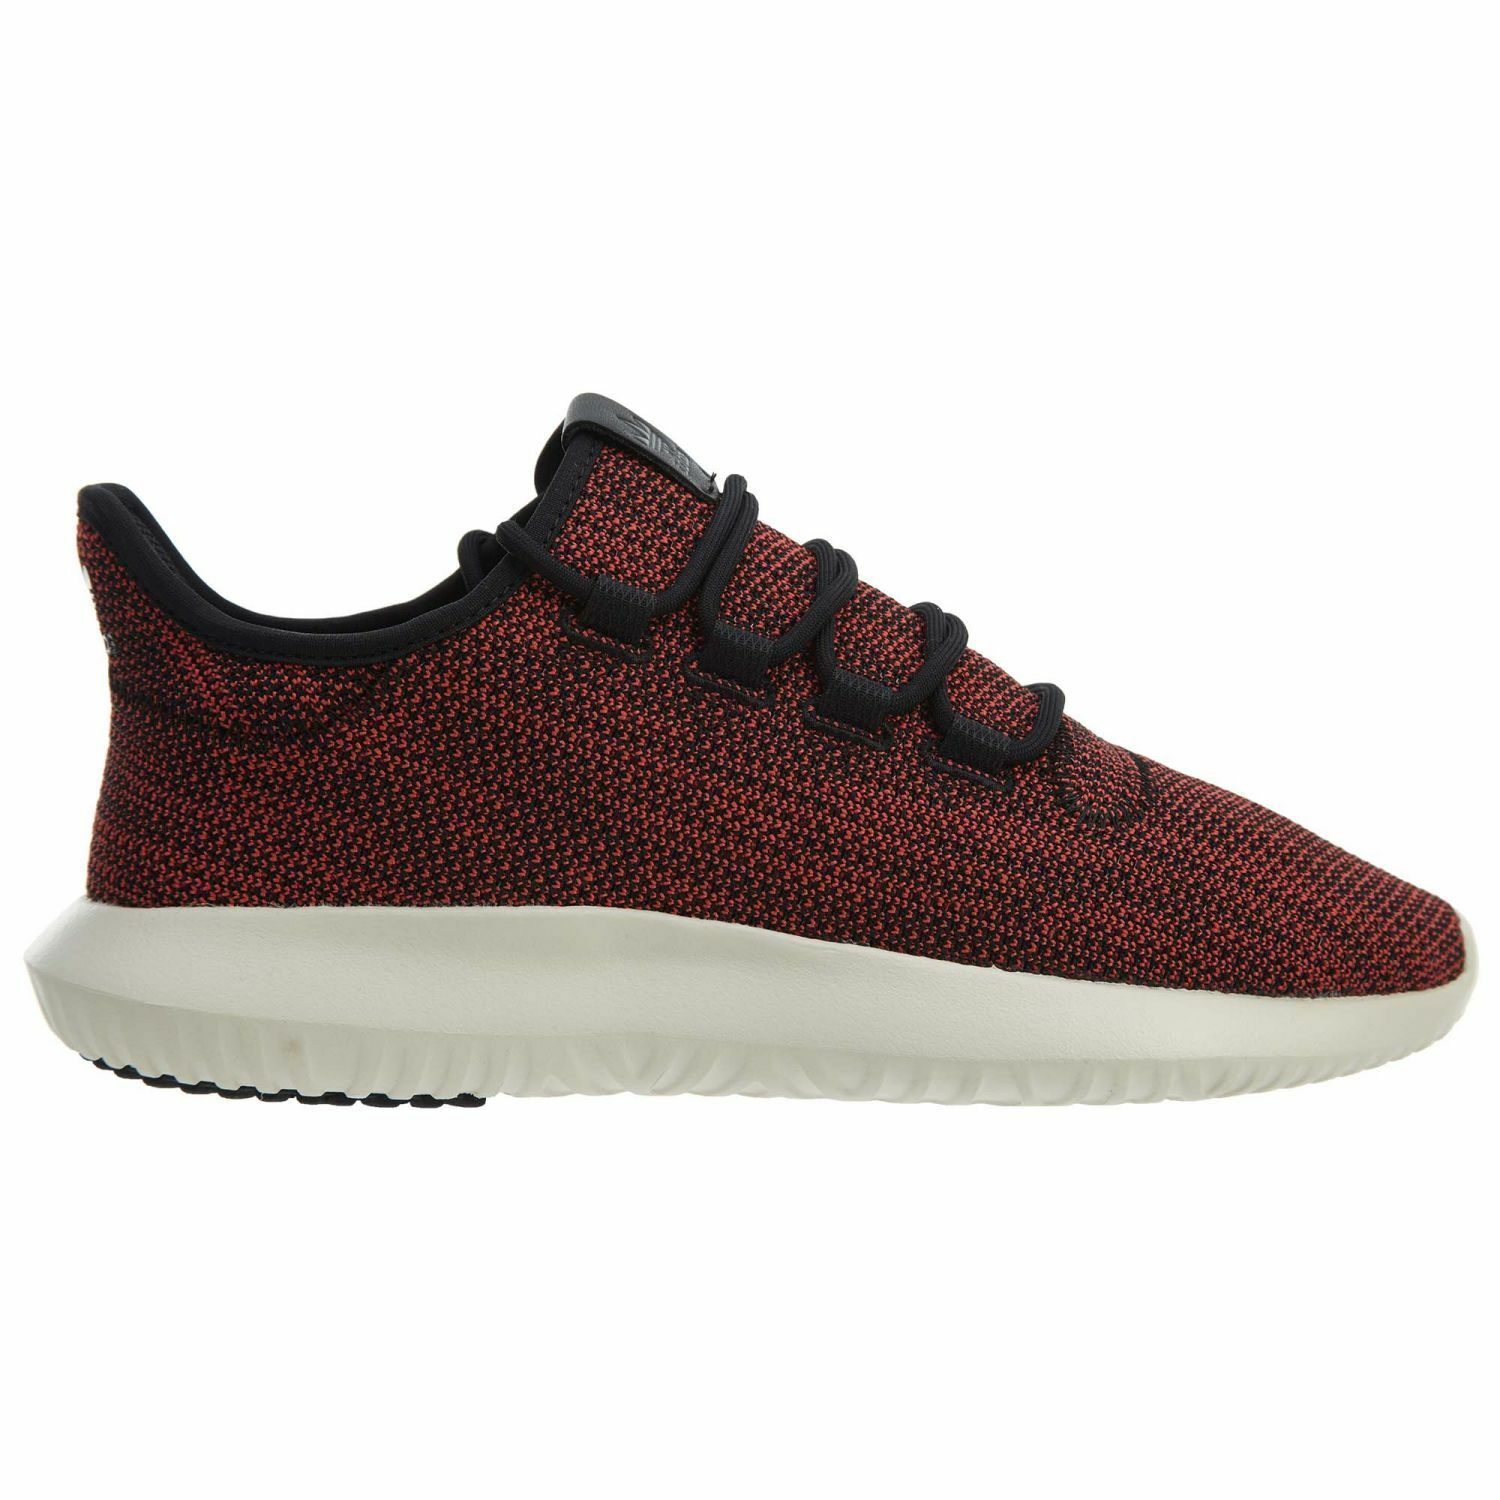 Adidas Tubular Shadow Knit CK Mens AC8791 Trace Scarlet Athletic Shoes Size 11